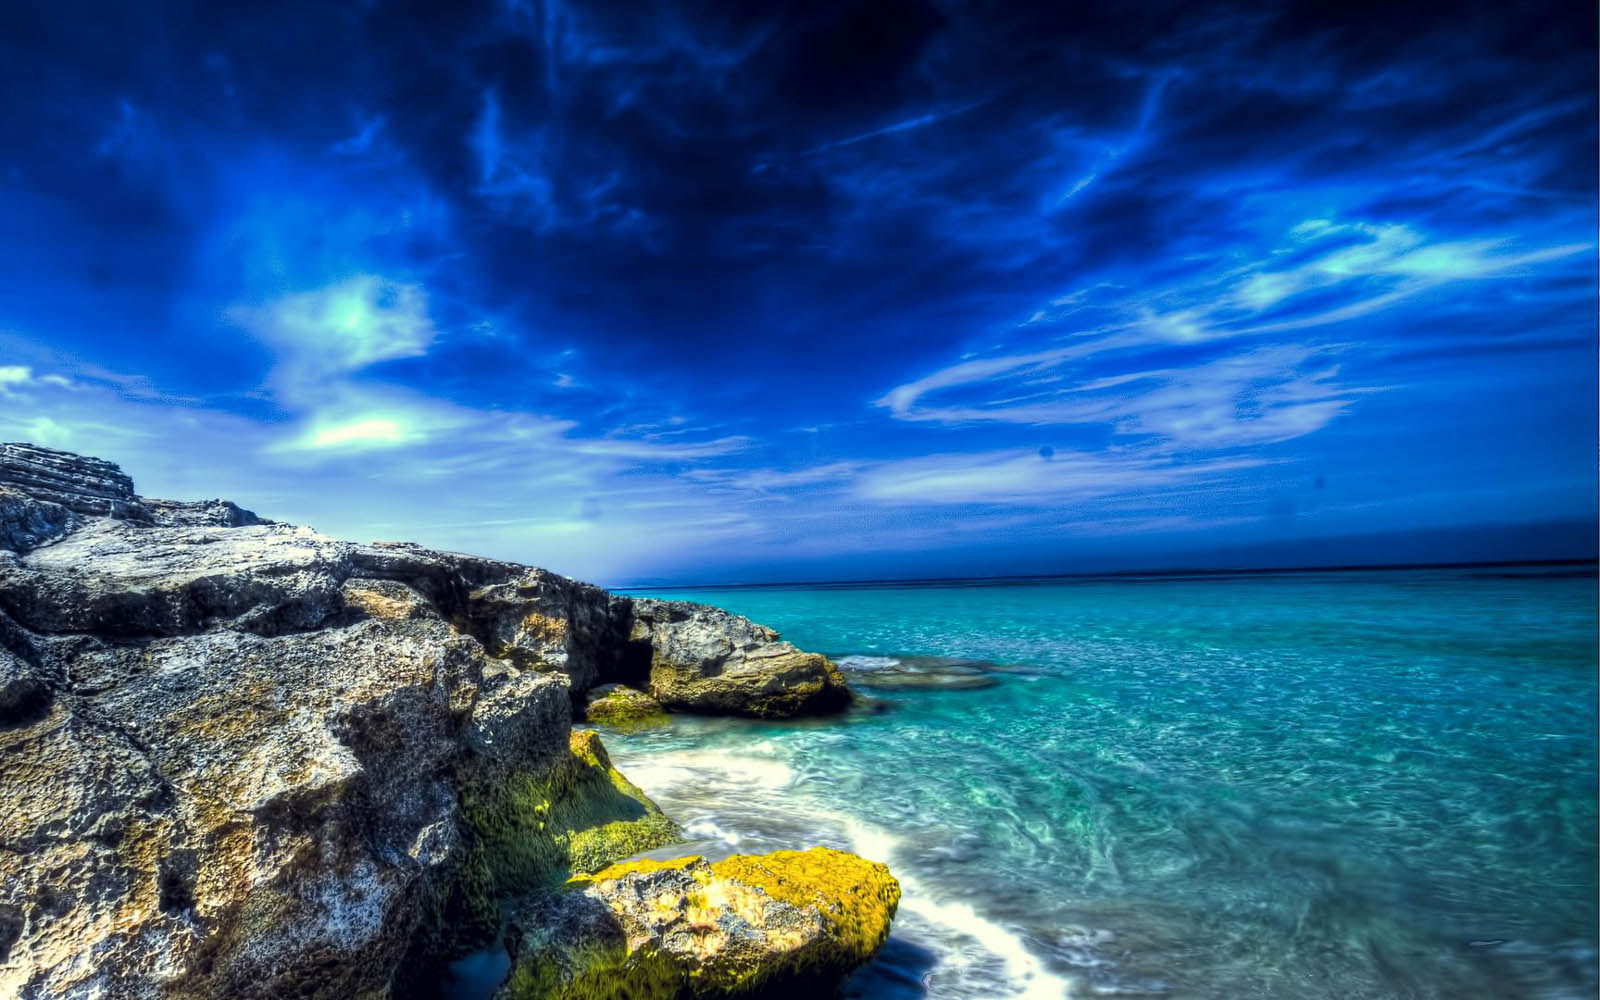 Wallpaper rocky beach desktop wallpapers for Wallpaper wallpaper wallpaper